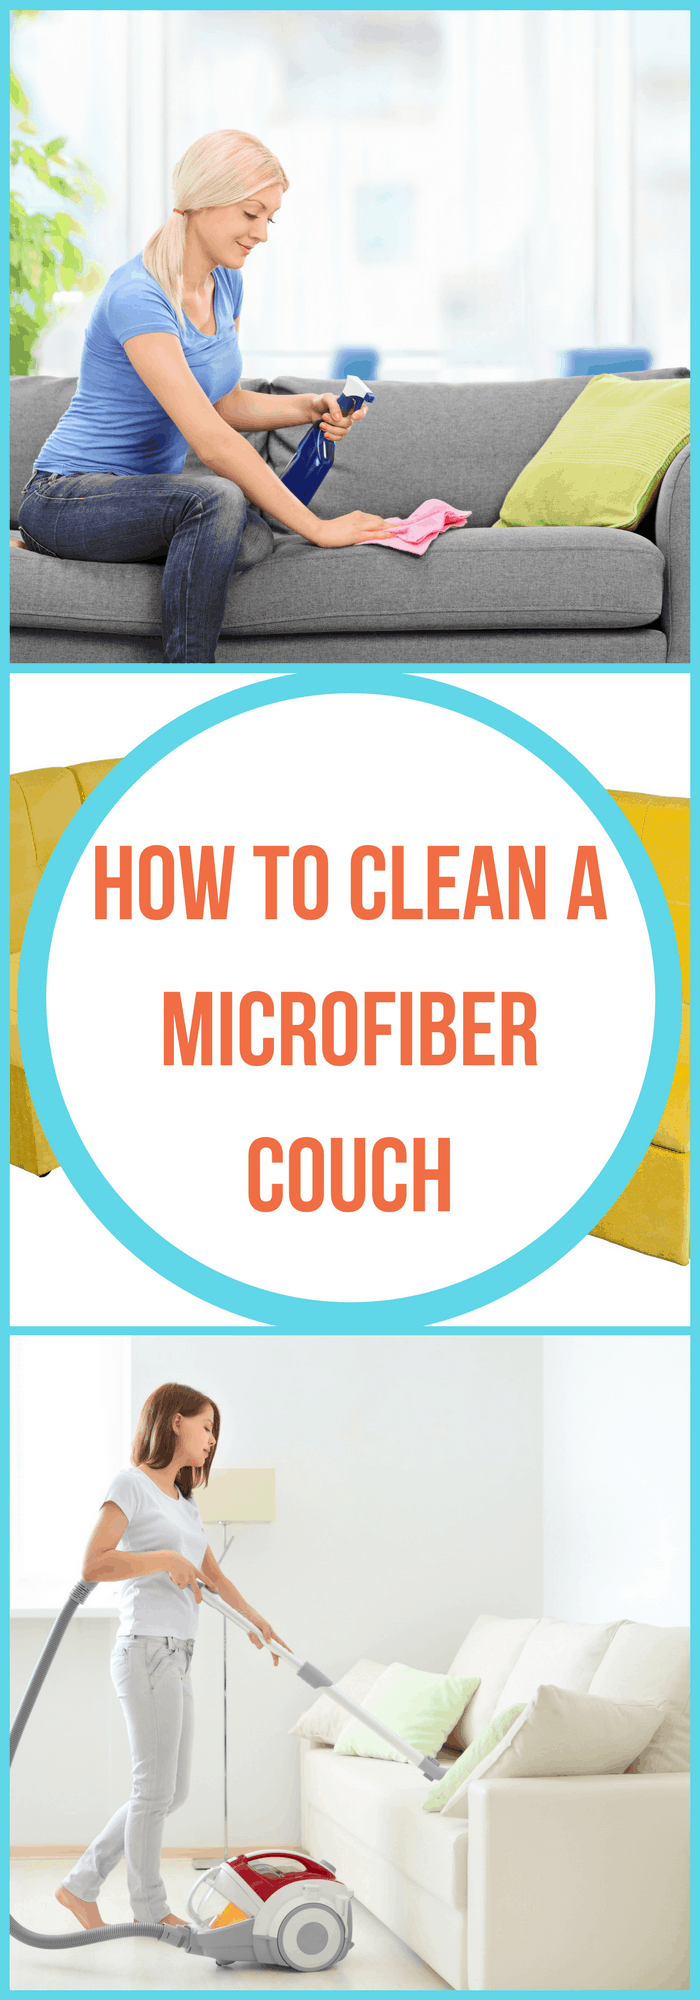 Cleaning-How to Clean a Microfiber Couch--The Organized Mom